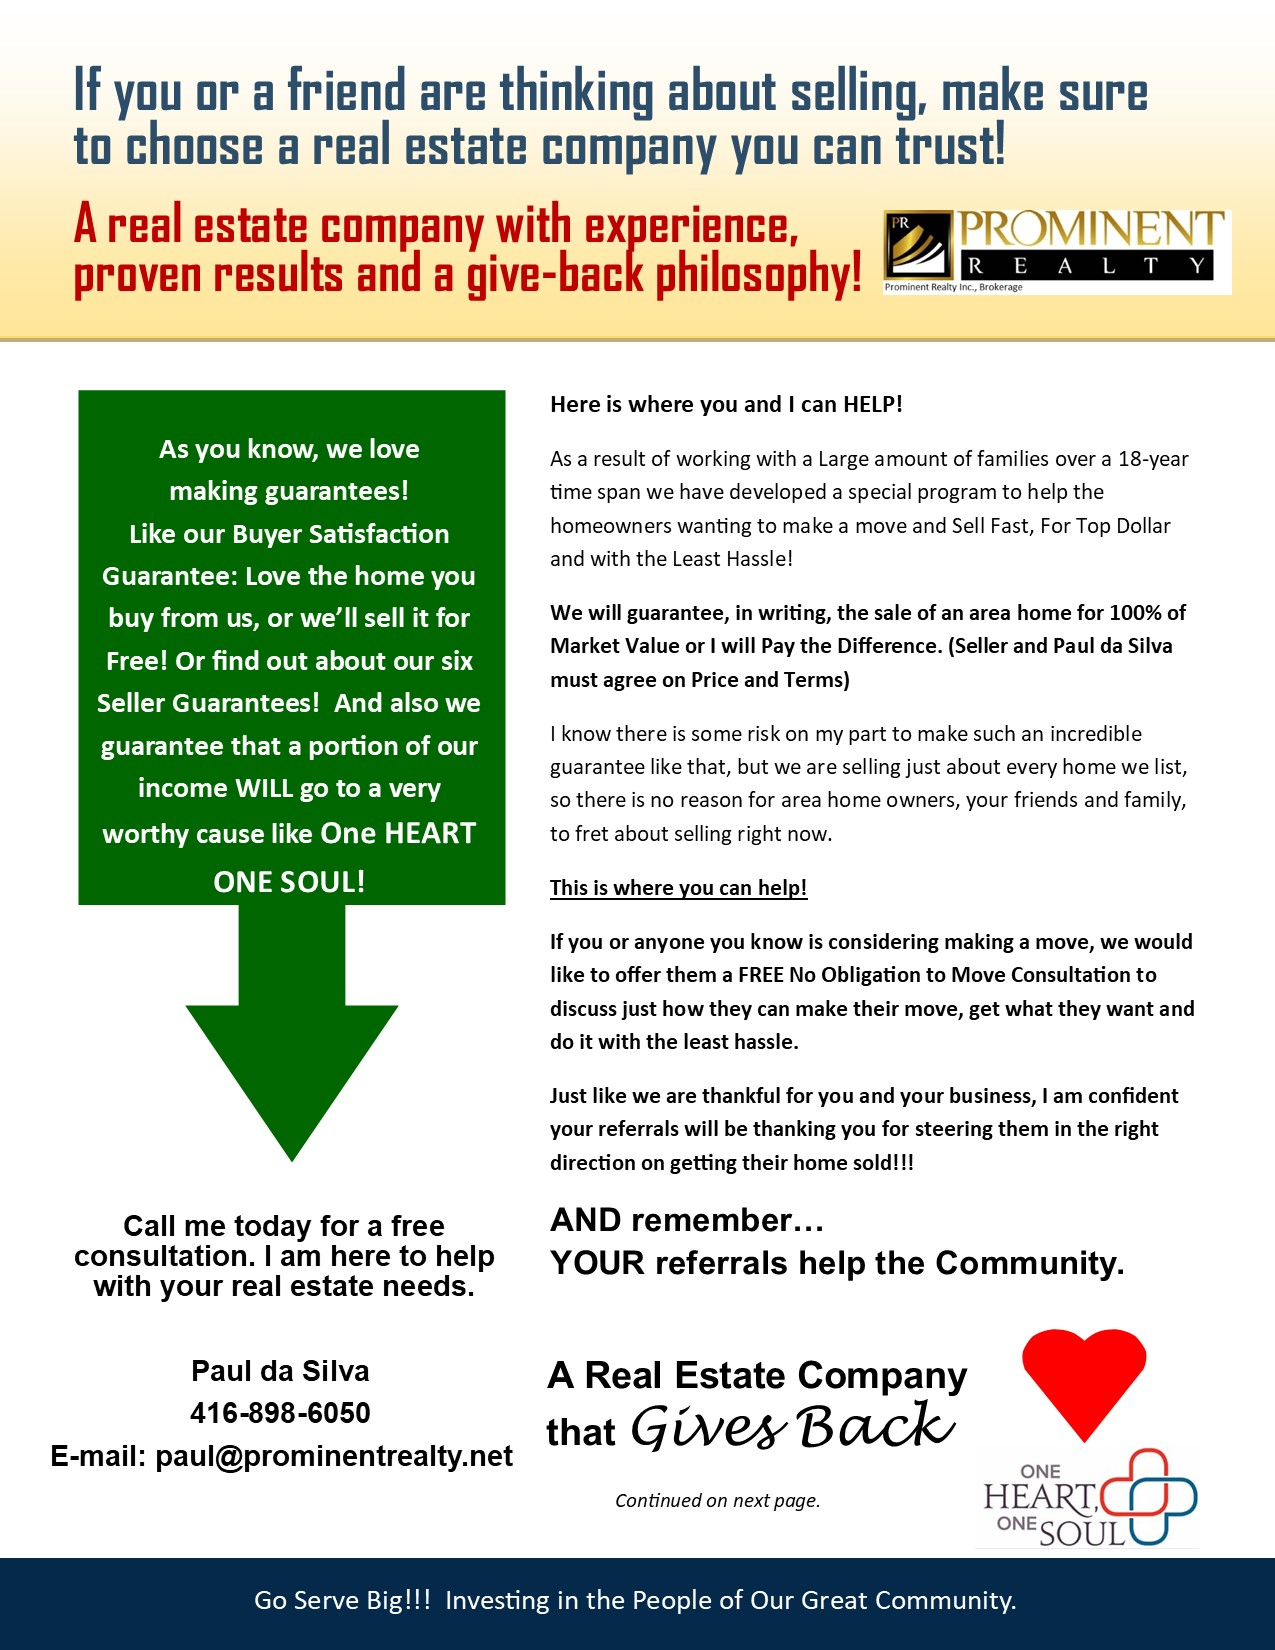 Prominent Realty-referral-marketi-tx8lxfnrPAGE2.jpg